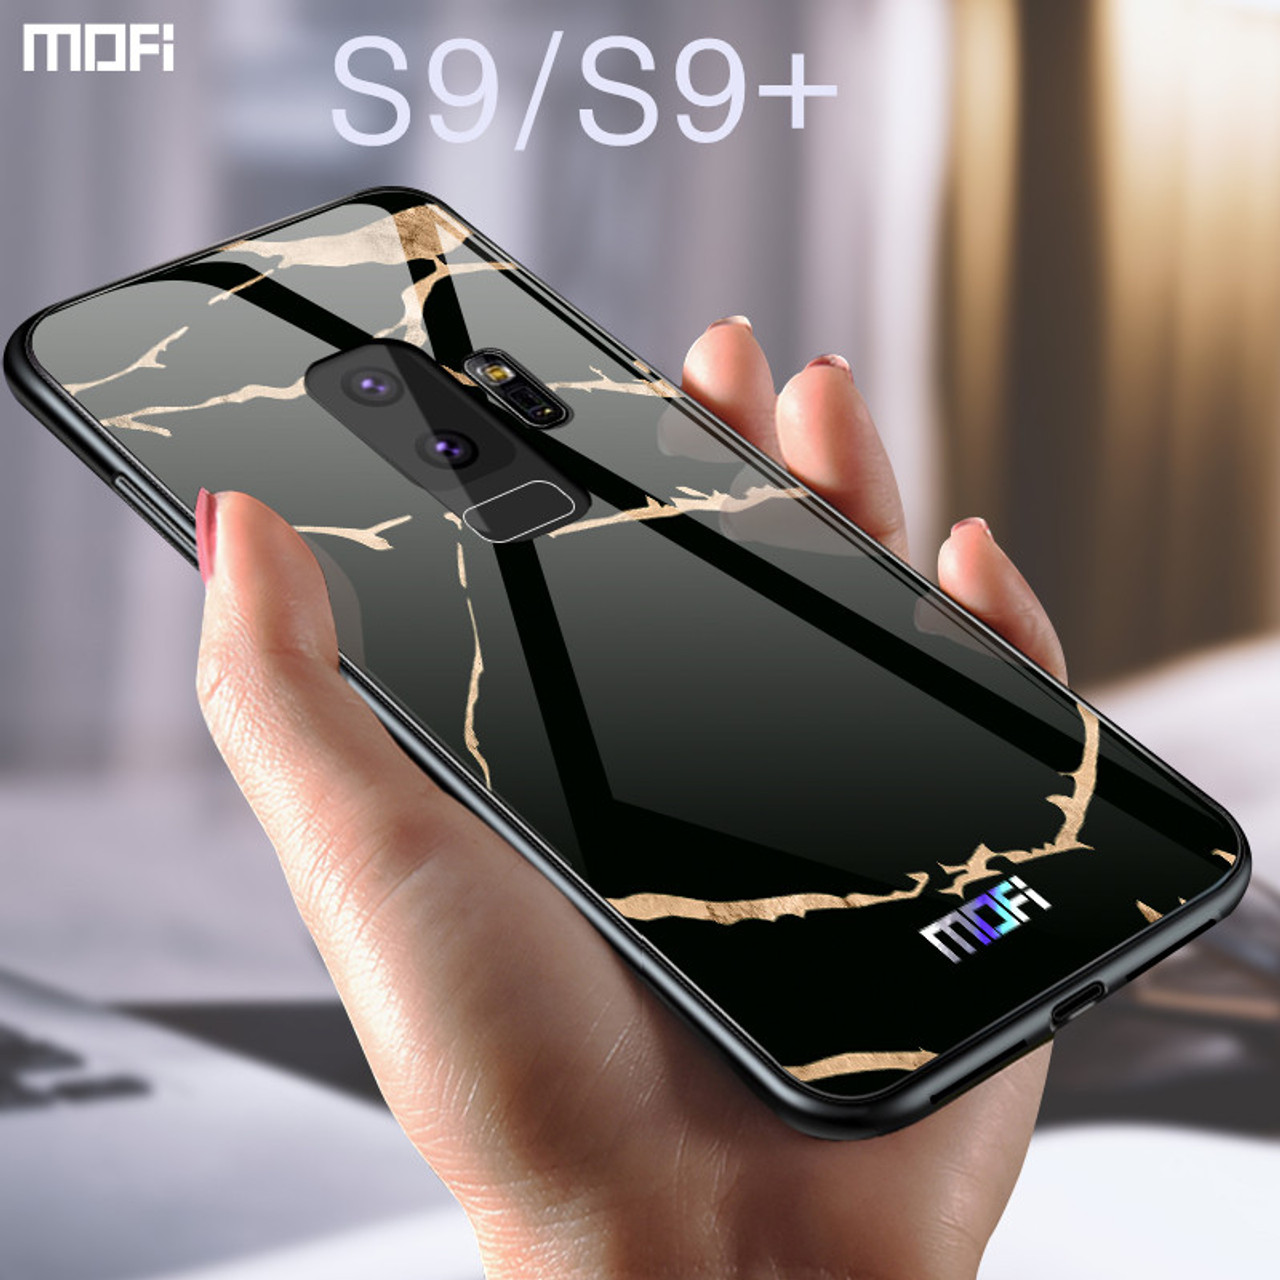 huge discount 0771f b7793 For samsung s9 case Mofi for samsung s9 plus case glass hard case for  samsung s9 marble grain black white for galaxy s9 plus